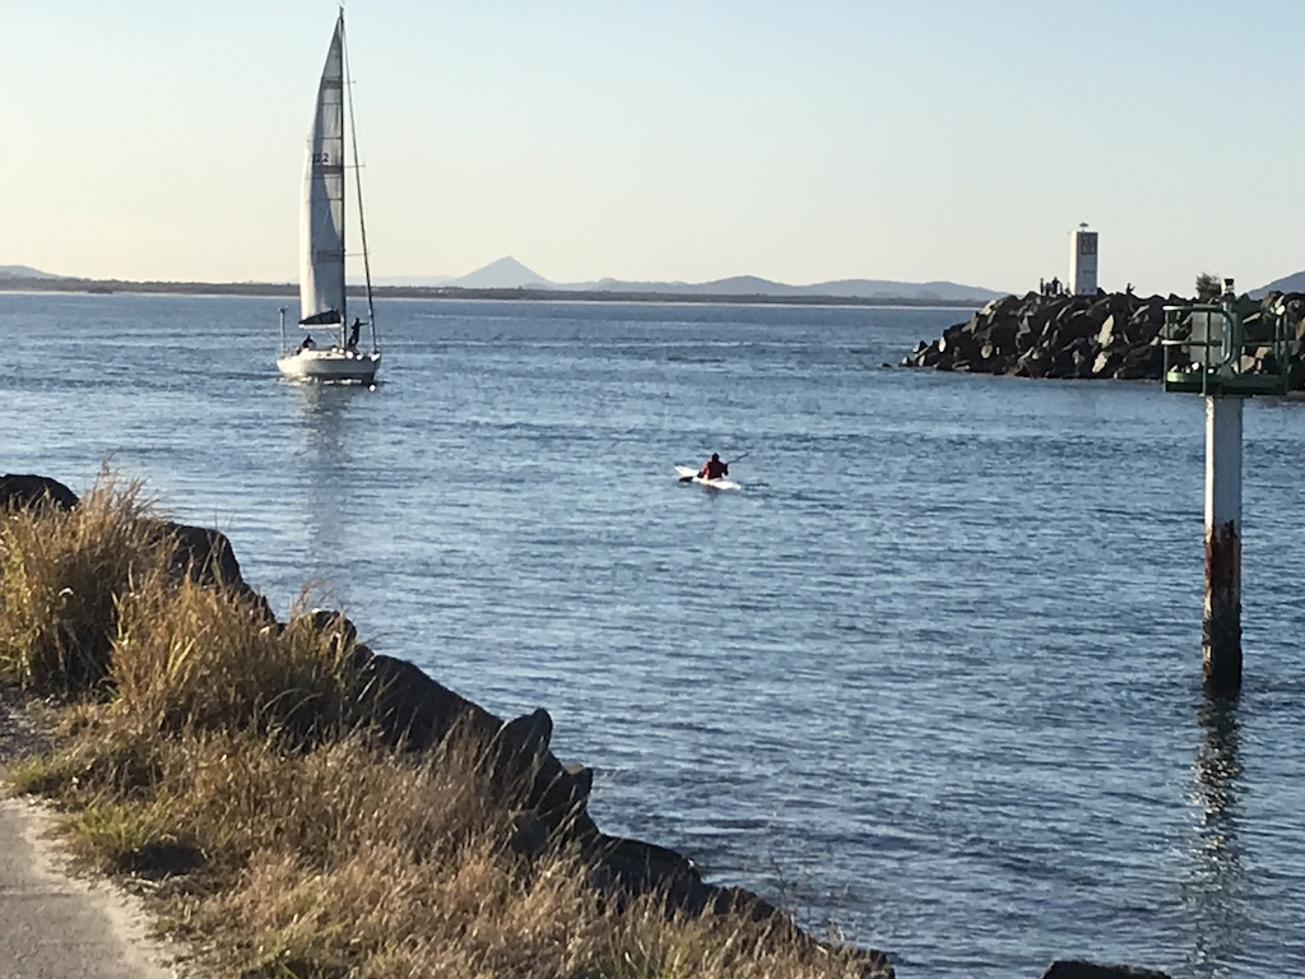 Trail Image for Mooloolaba Paddle